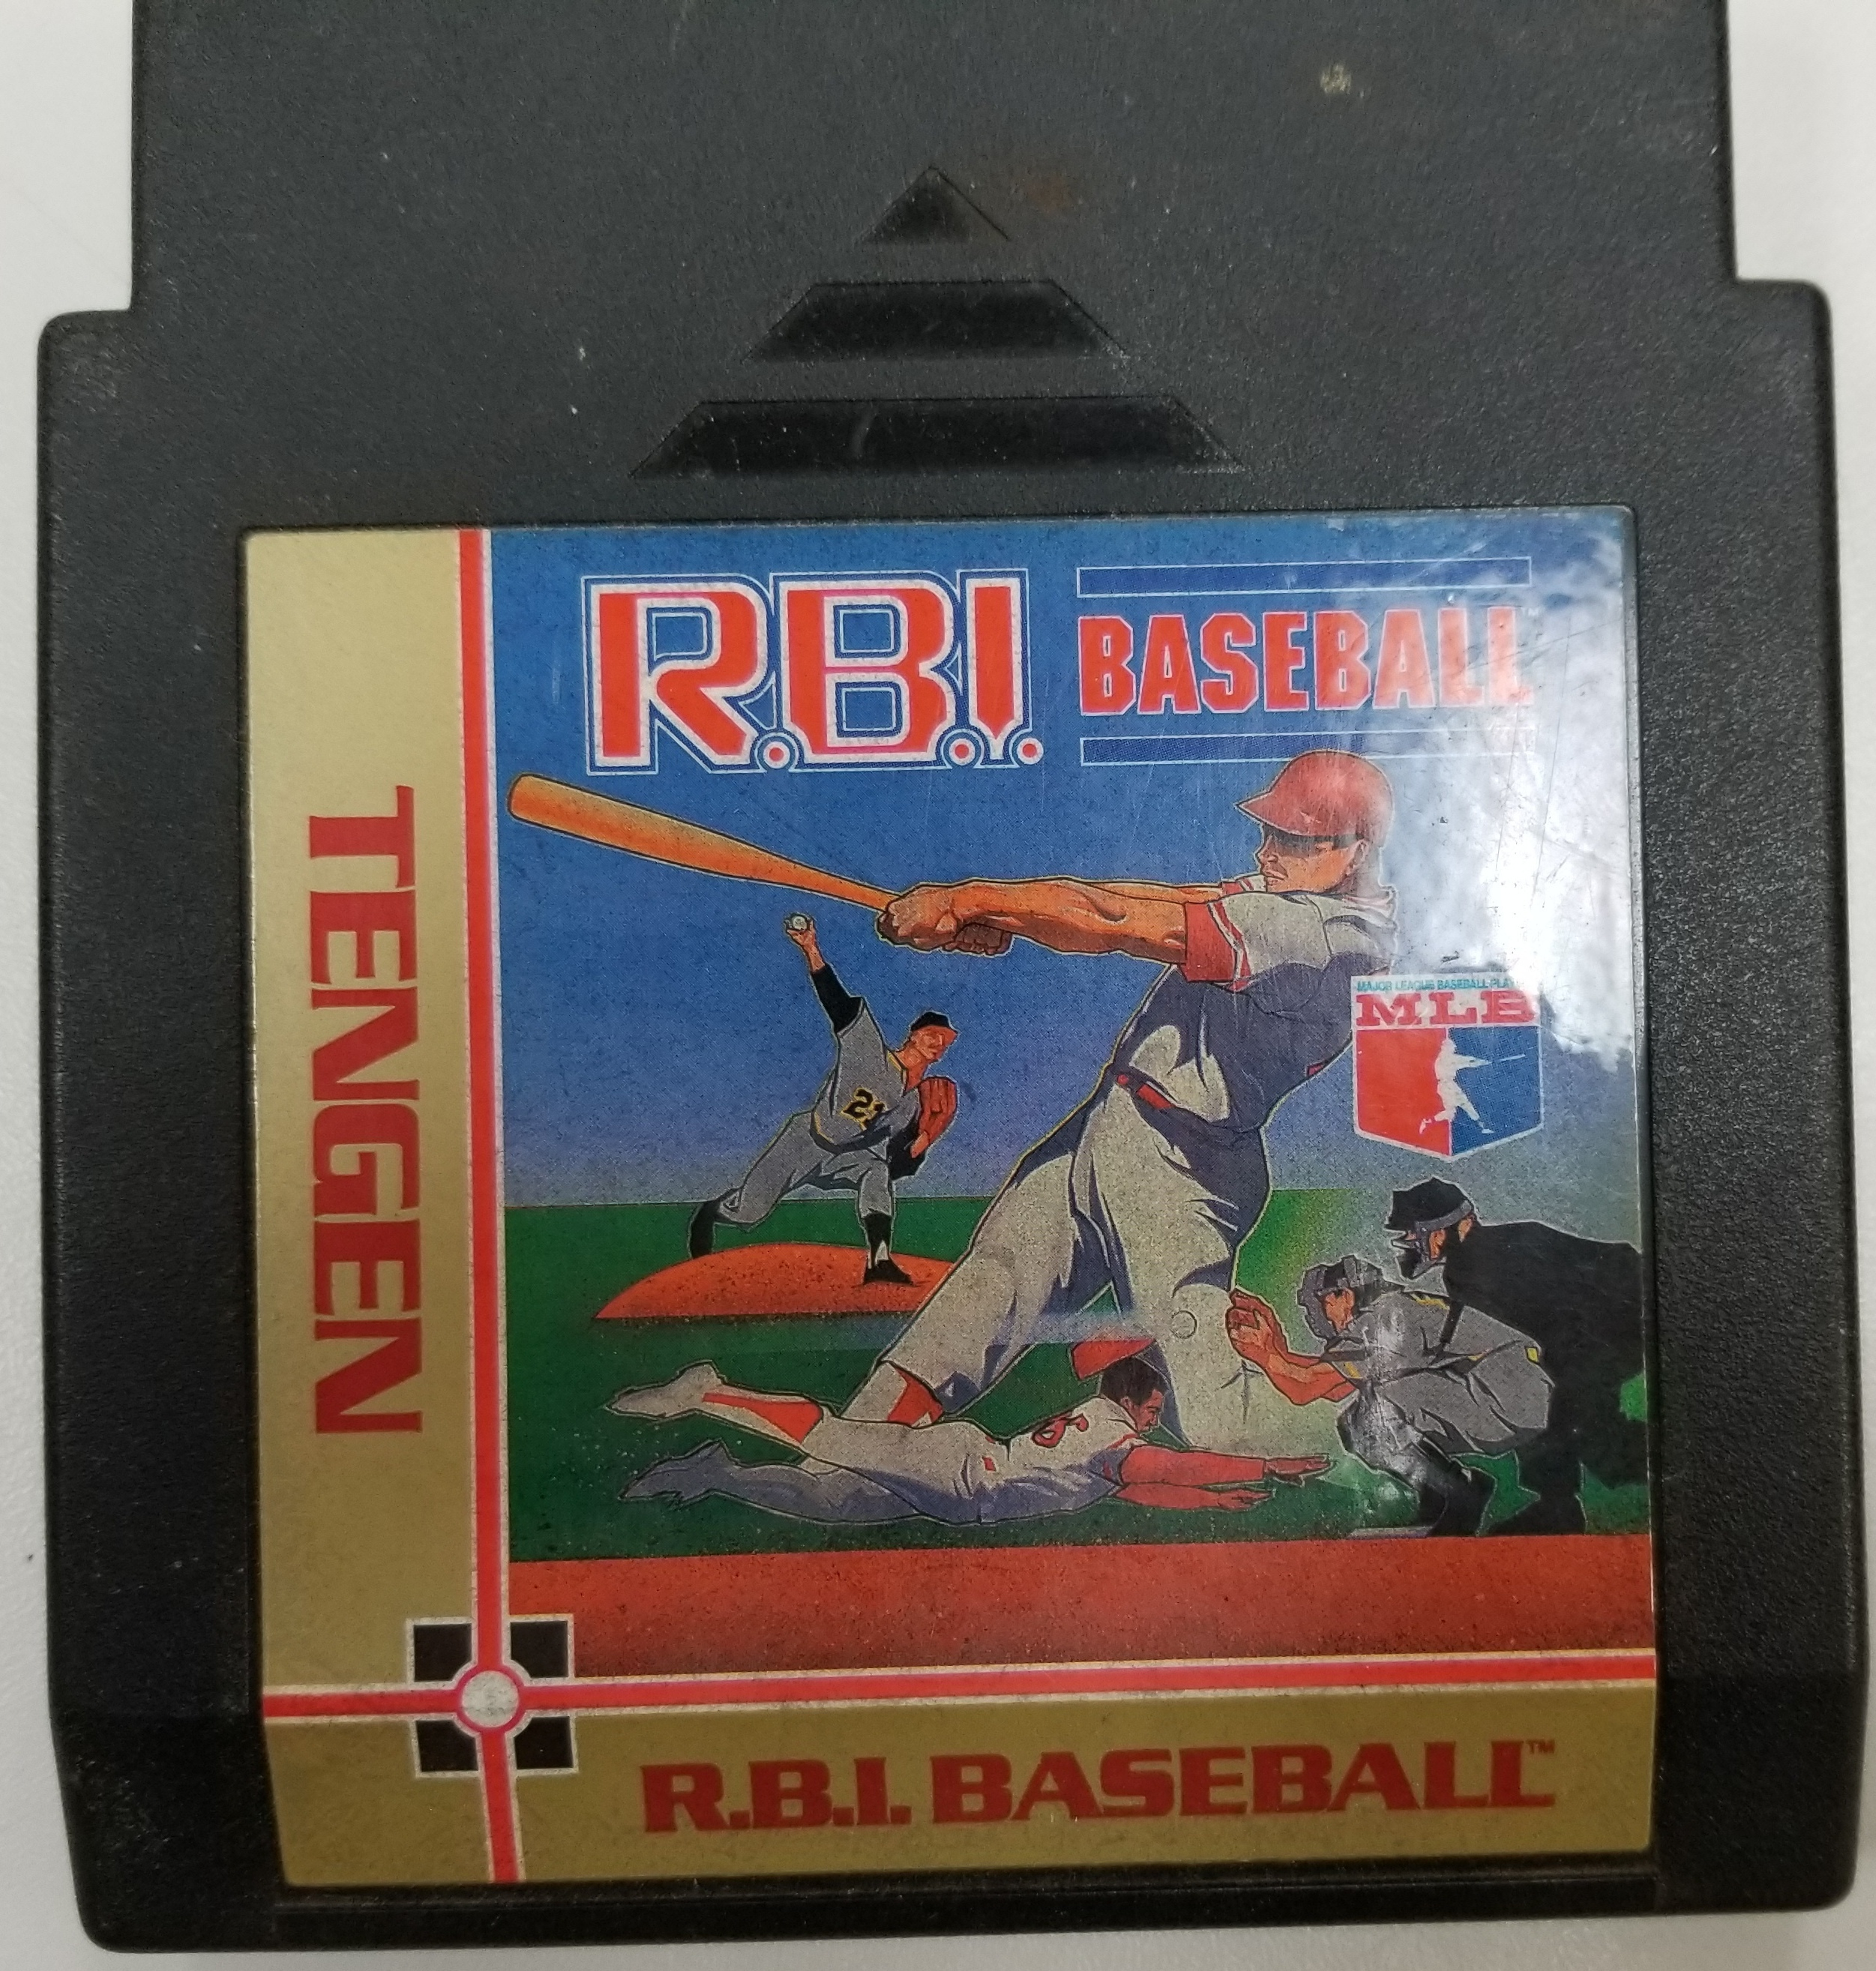 RBI BASEBALL NES GAME